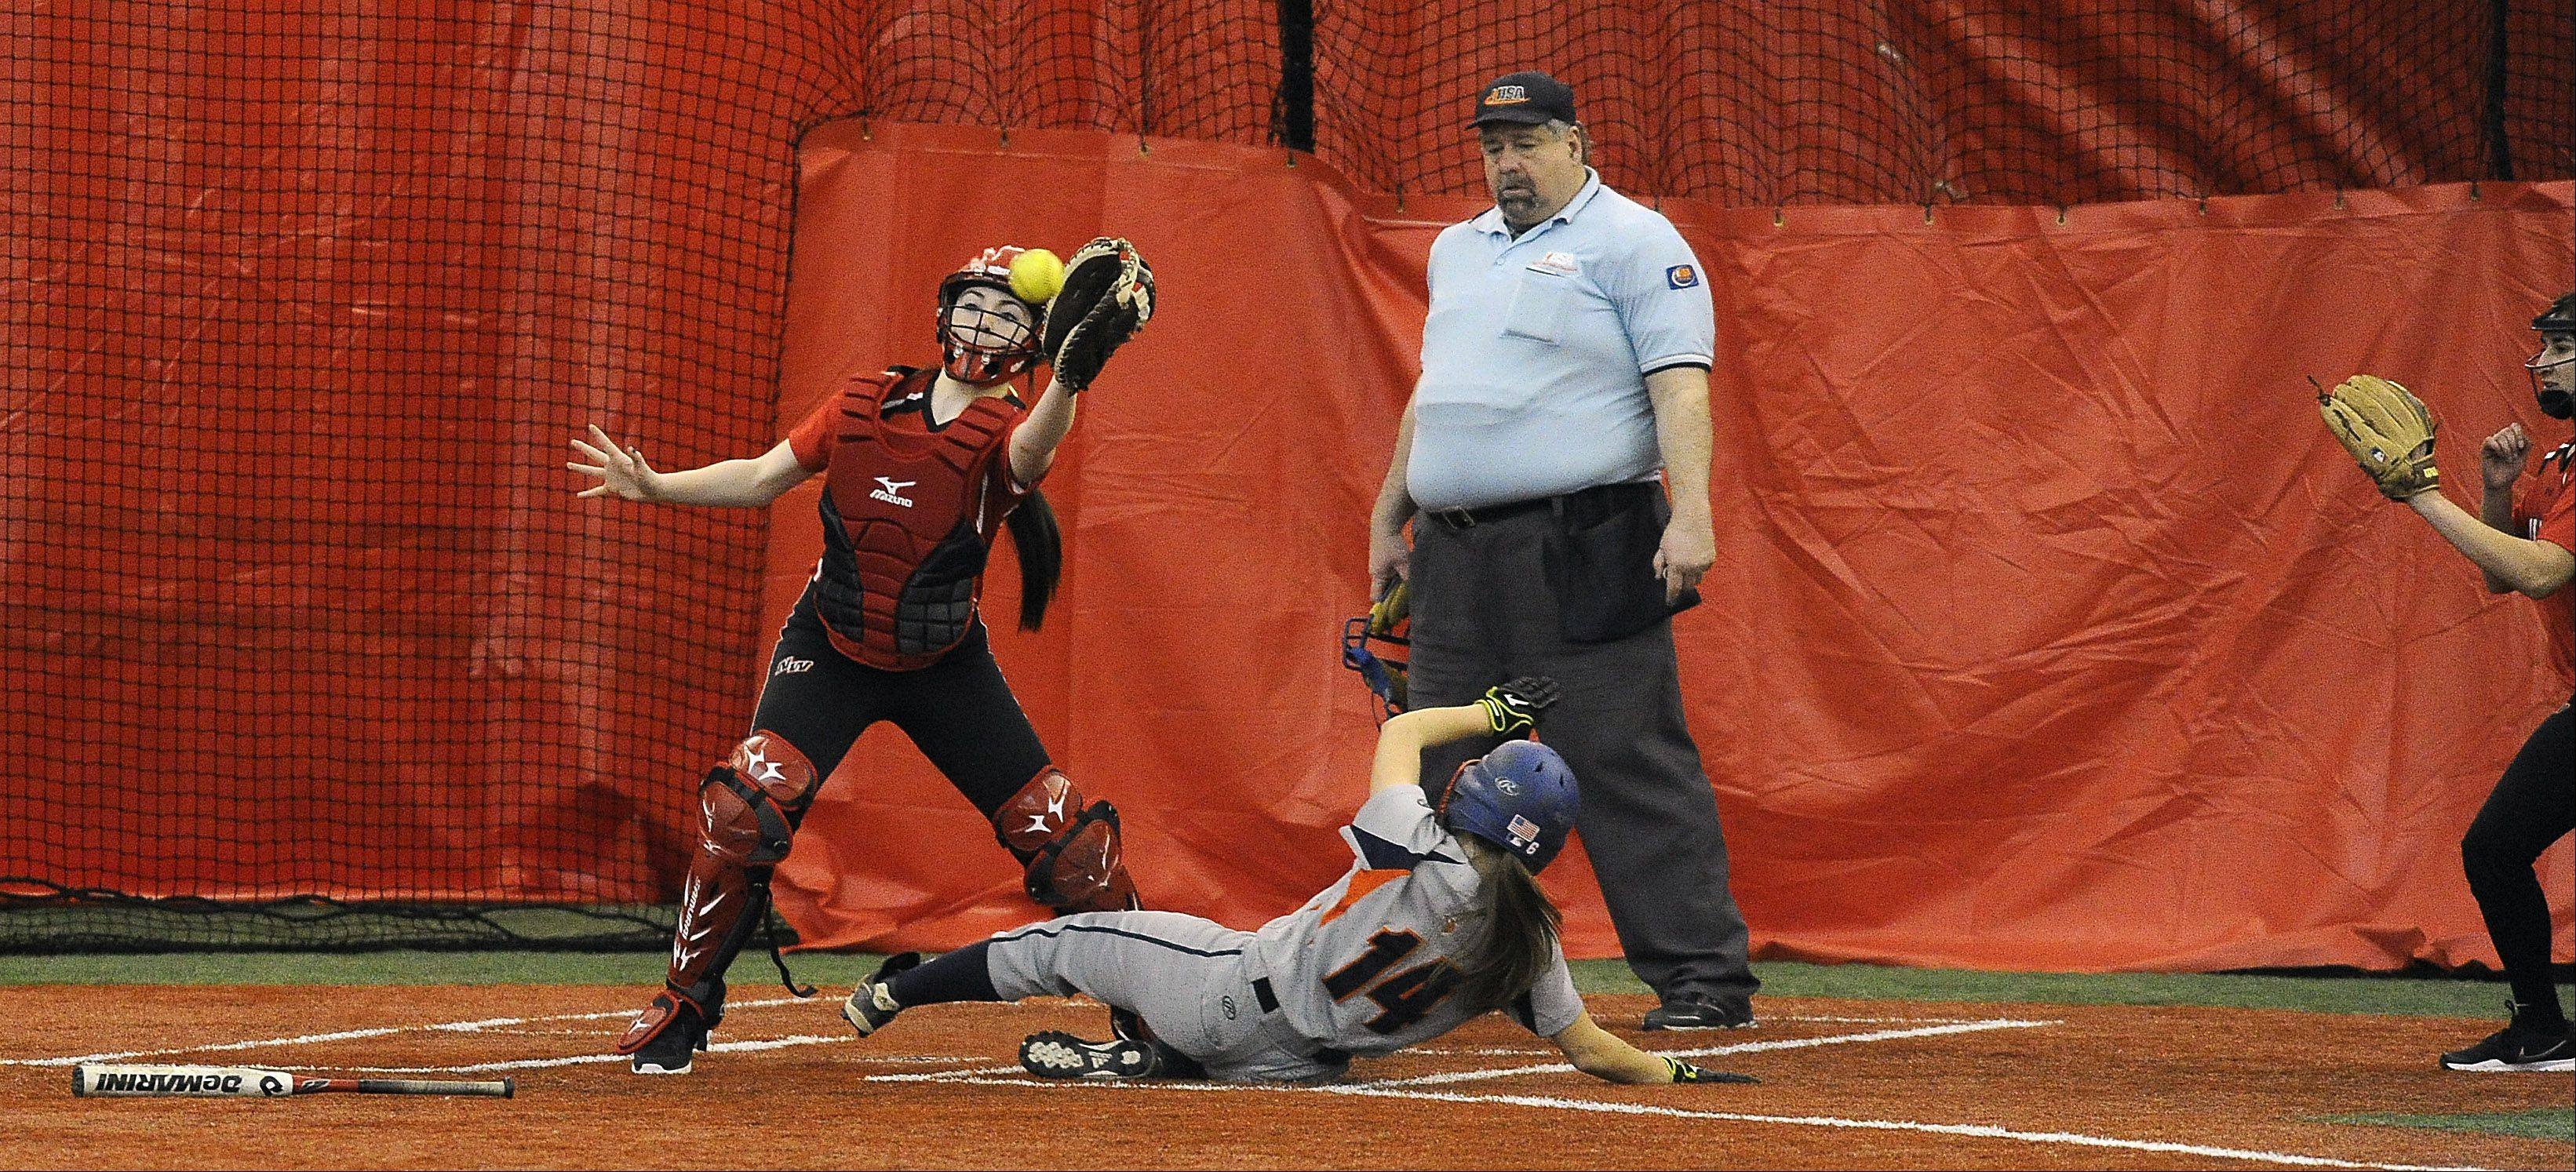 Niles West catcher Shannon McHugh fields a late throw in the seventh inning as Buffalo Grove's Michelle Dublin slides safely into home after a hit by teammate Maddi Morini at the Dome at the Ballpark in Rosemont on Wednesday.